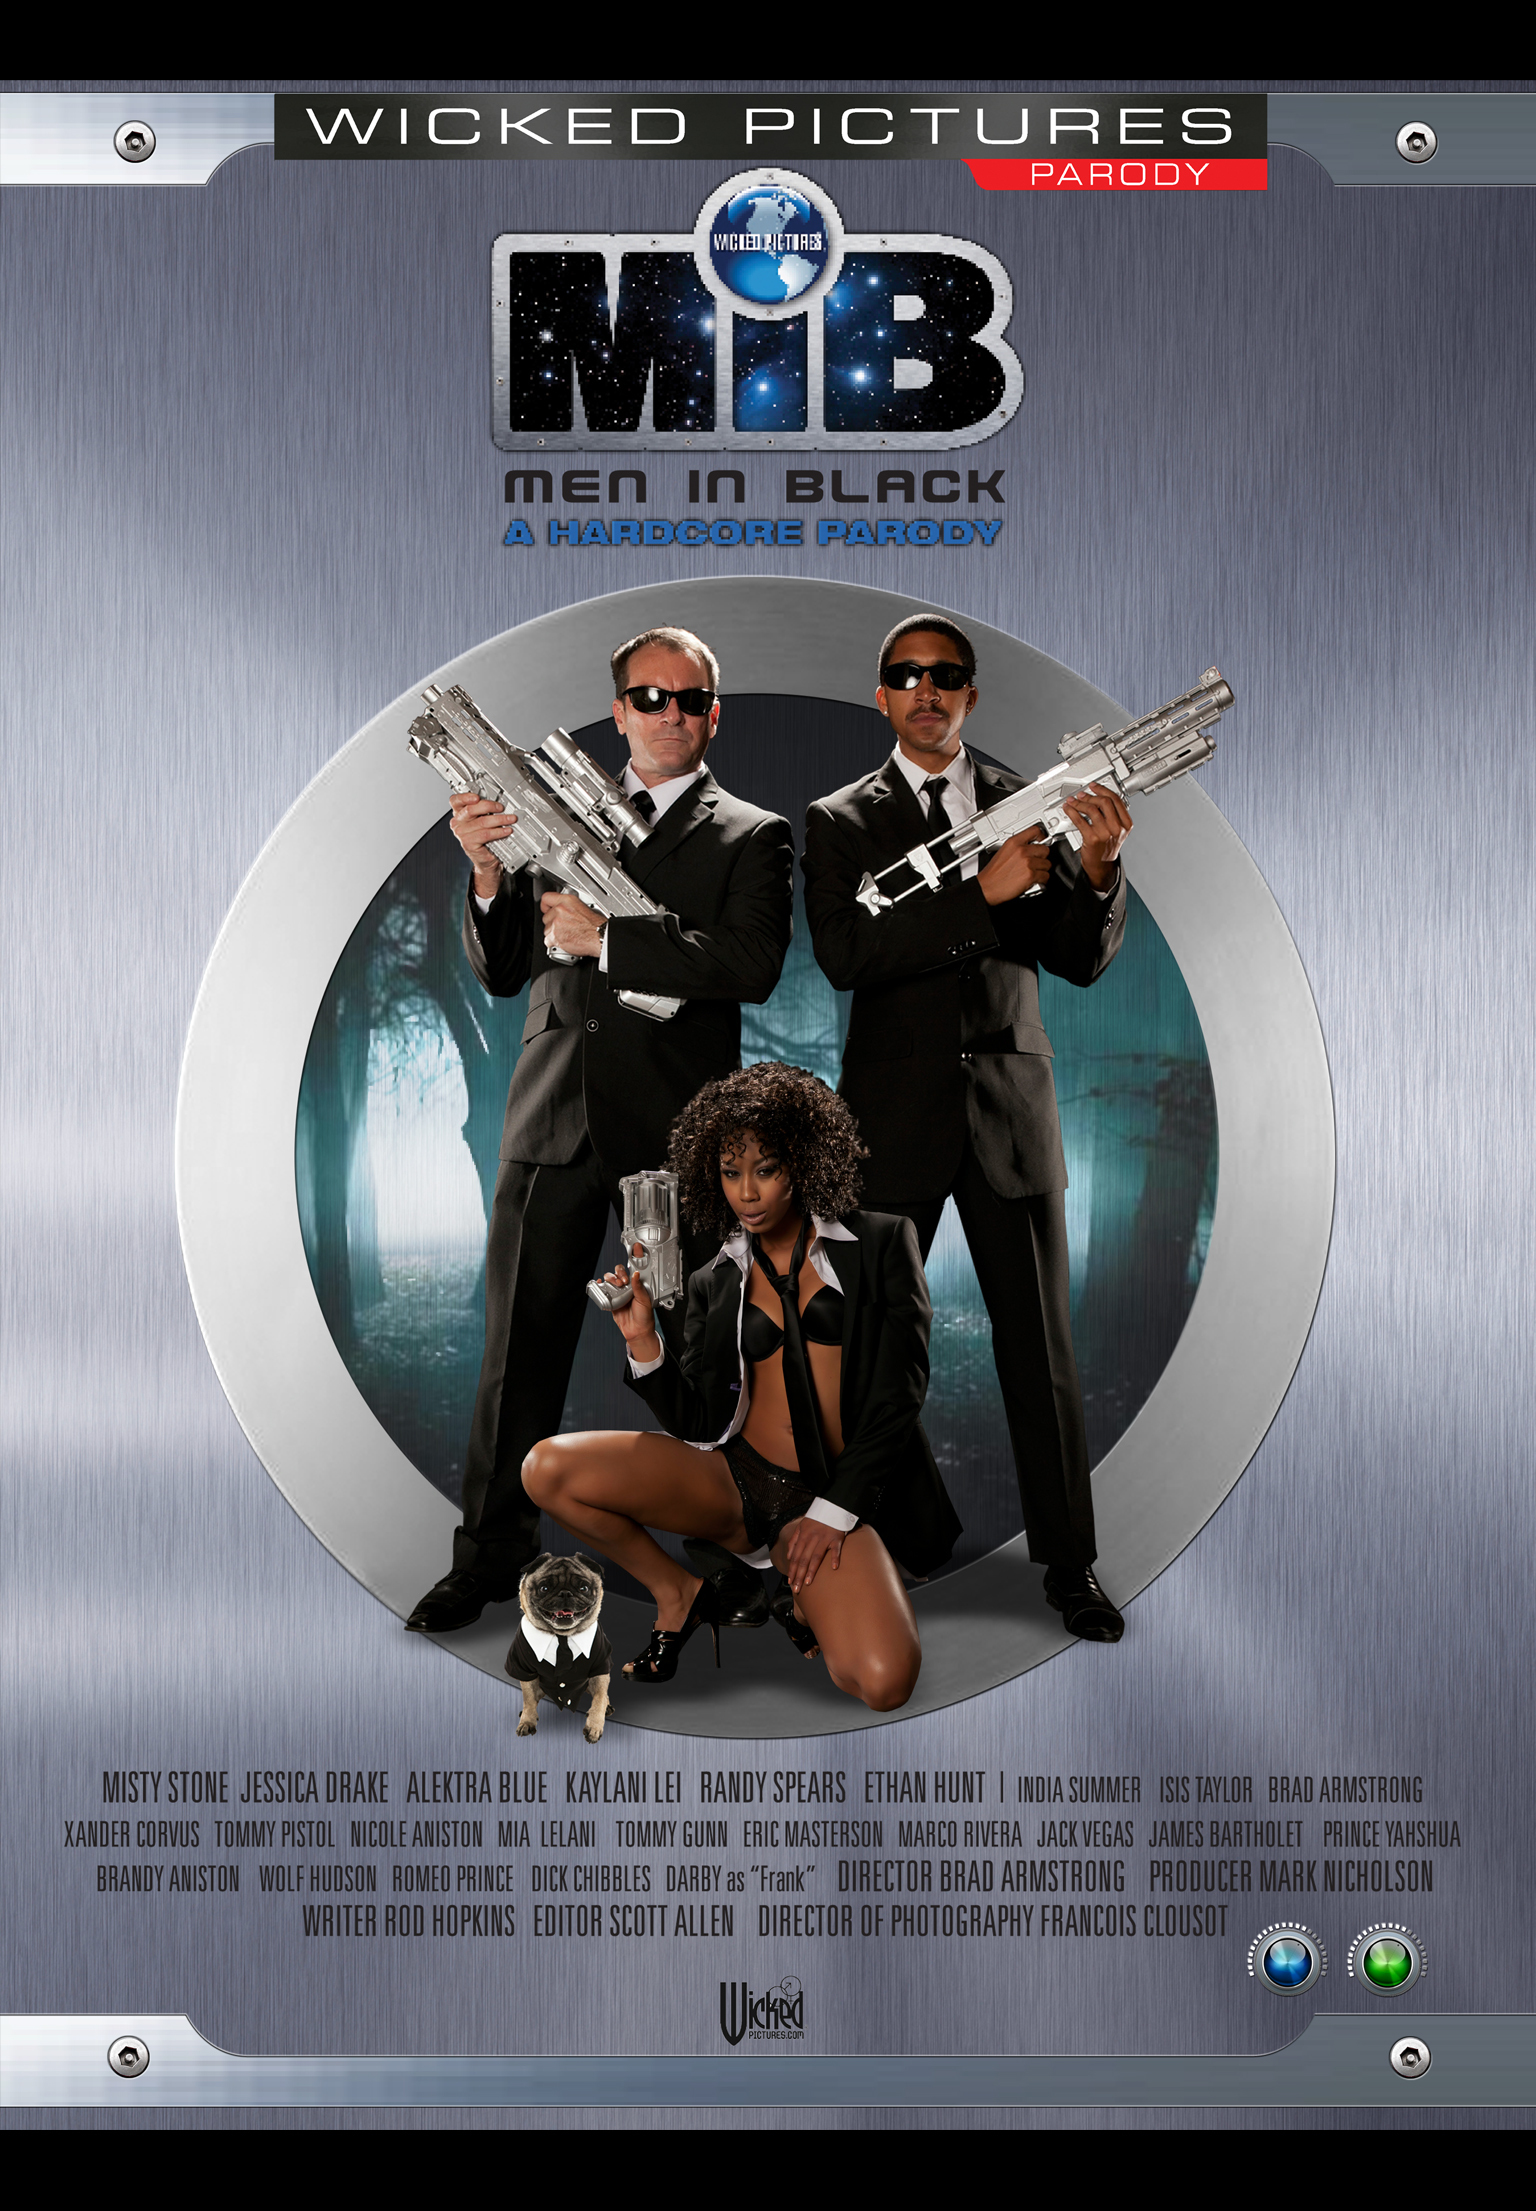 Люди в чёрном 1-2-3 XXX Men In Black A Hardcore Parody XXX 2012 HD.